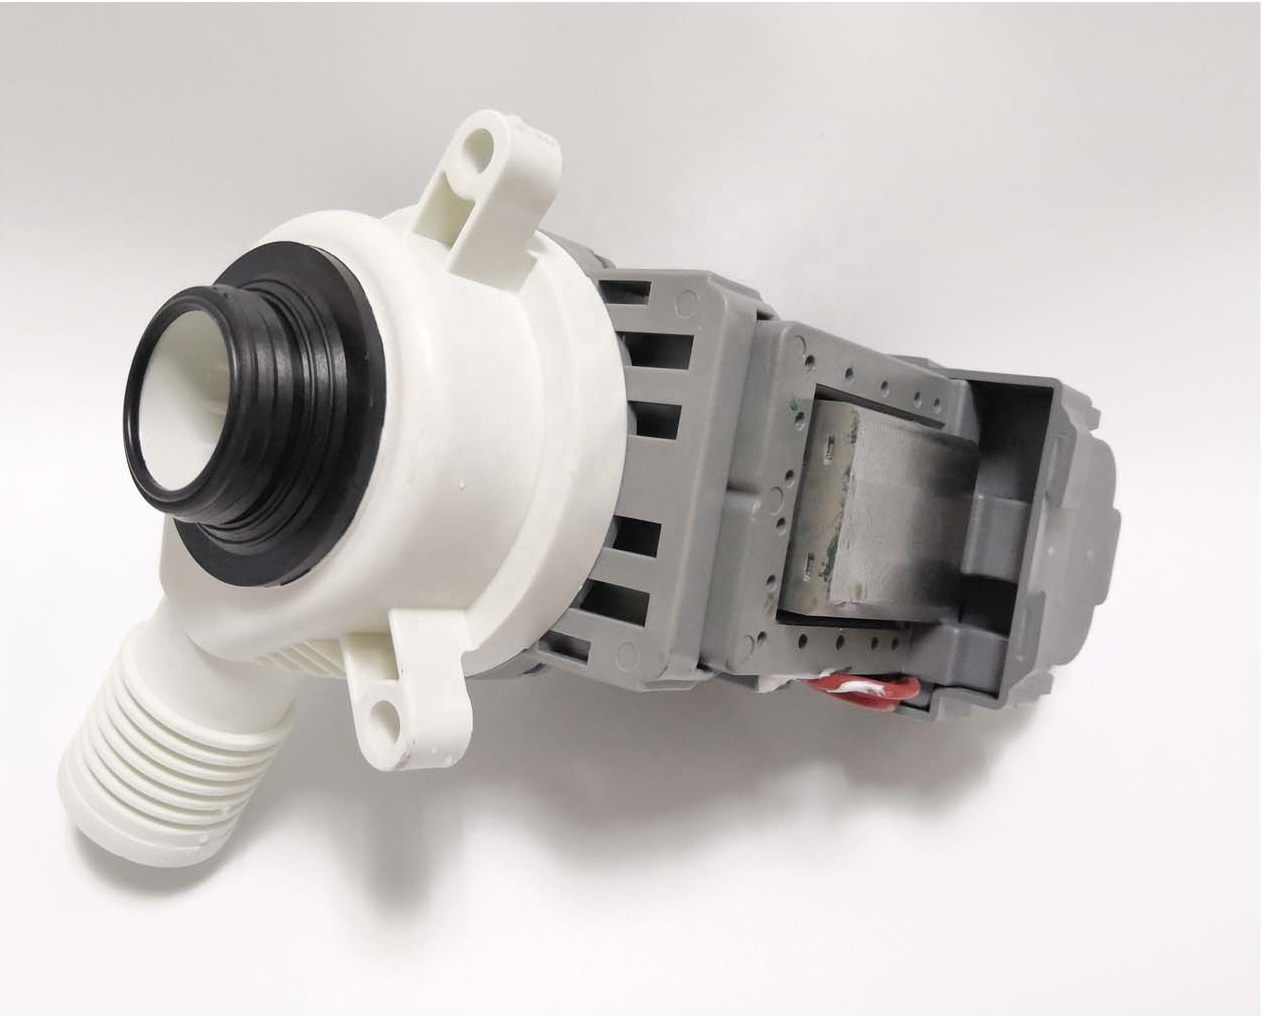 Whirlpool W10276397 Replacement Drain Pump